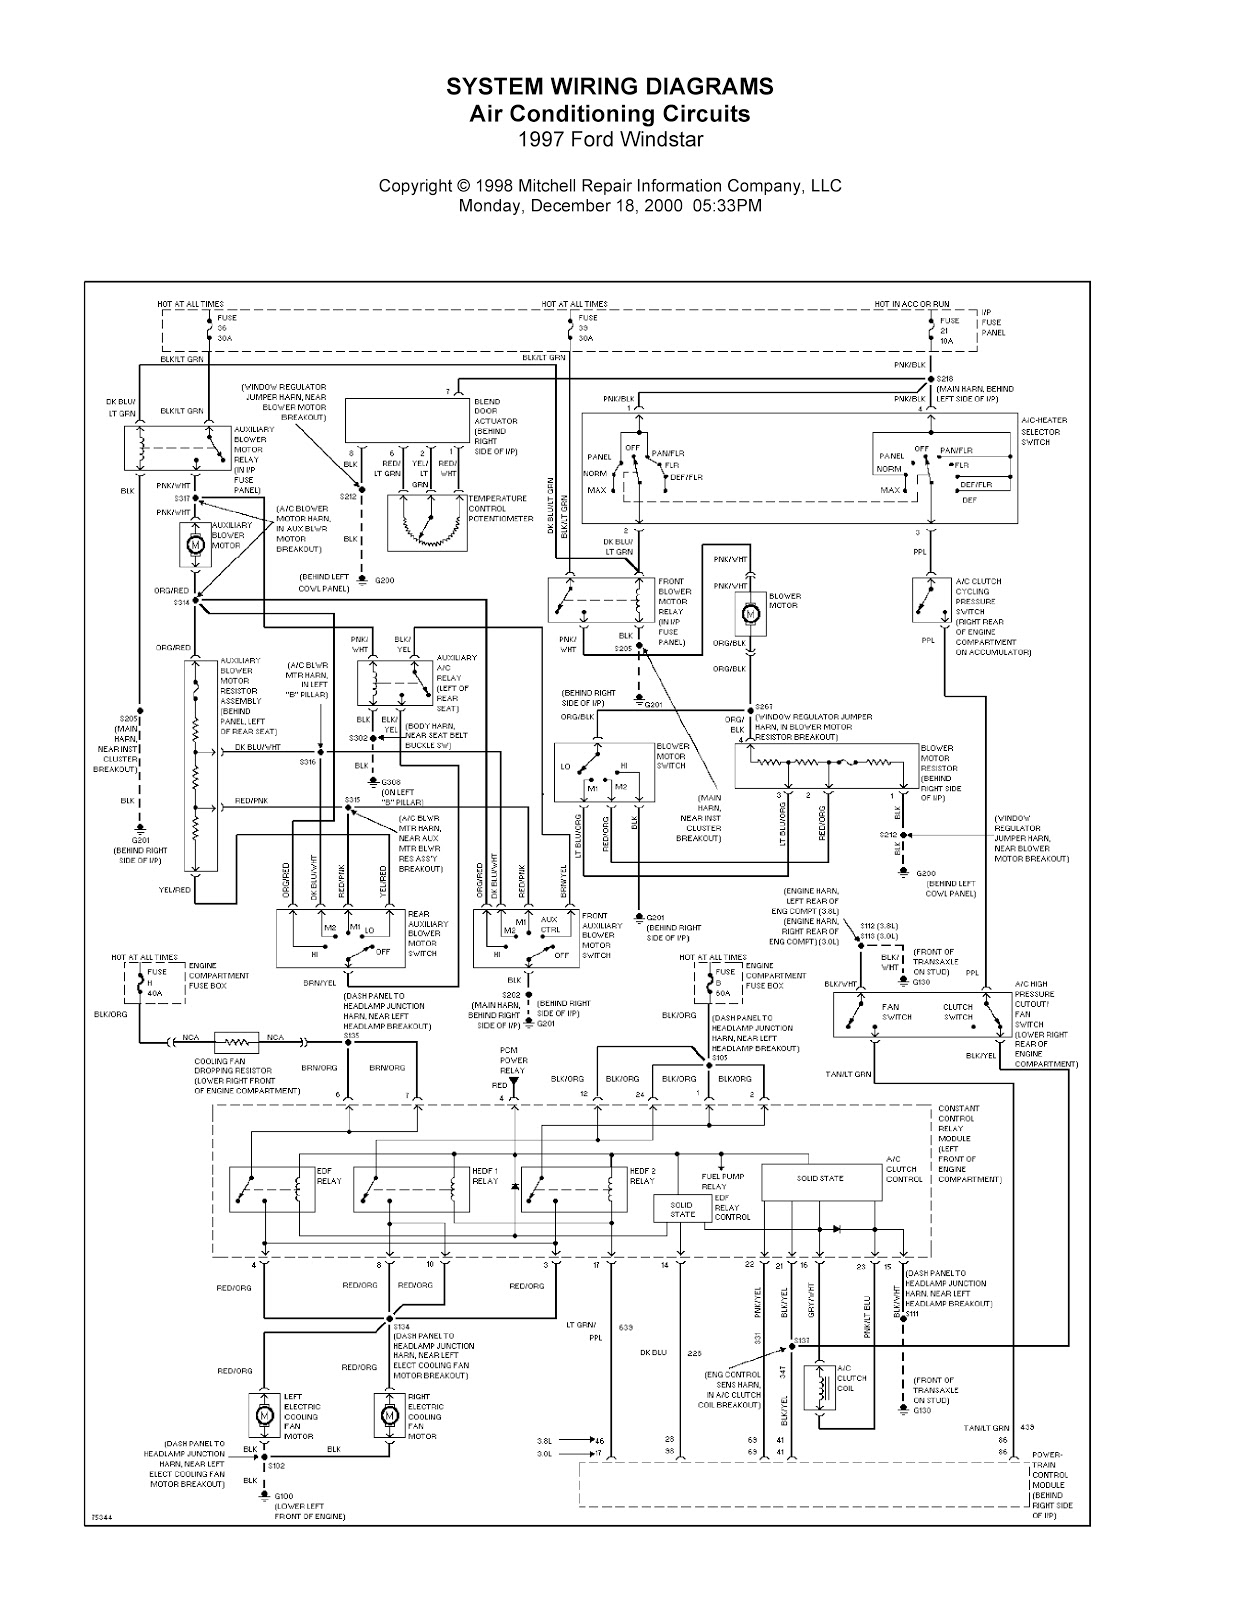 0001 2000 ford windstar wiring diagram ford windstar 3 8 engine diagram 1999 ford windstar fuse panel diagram at eliteediting.co